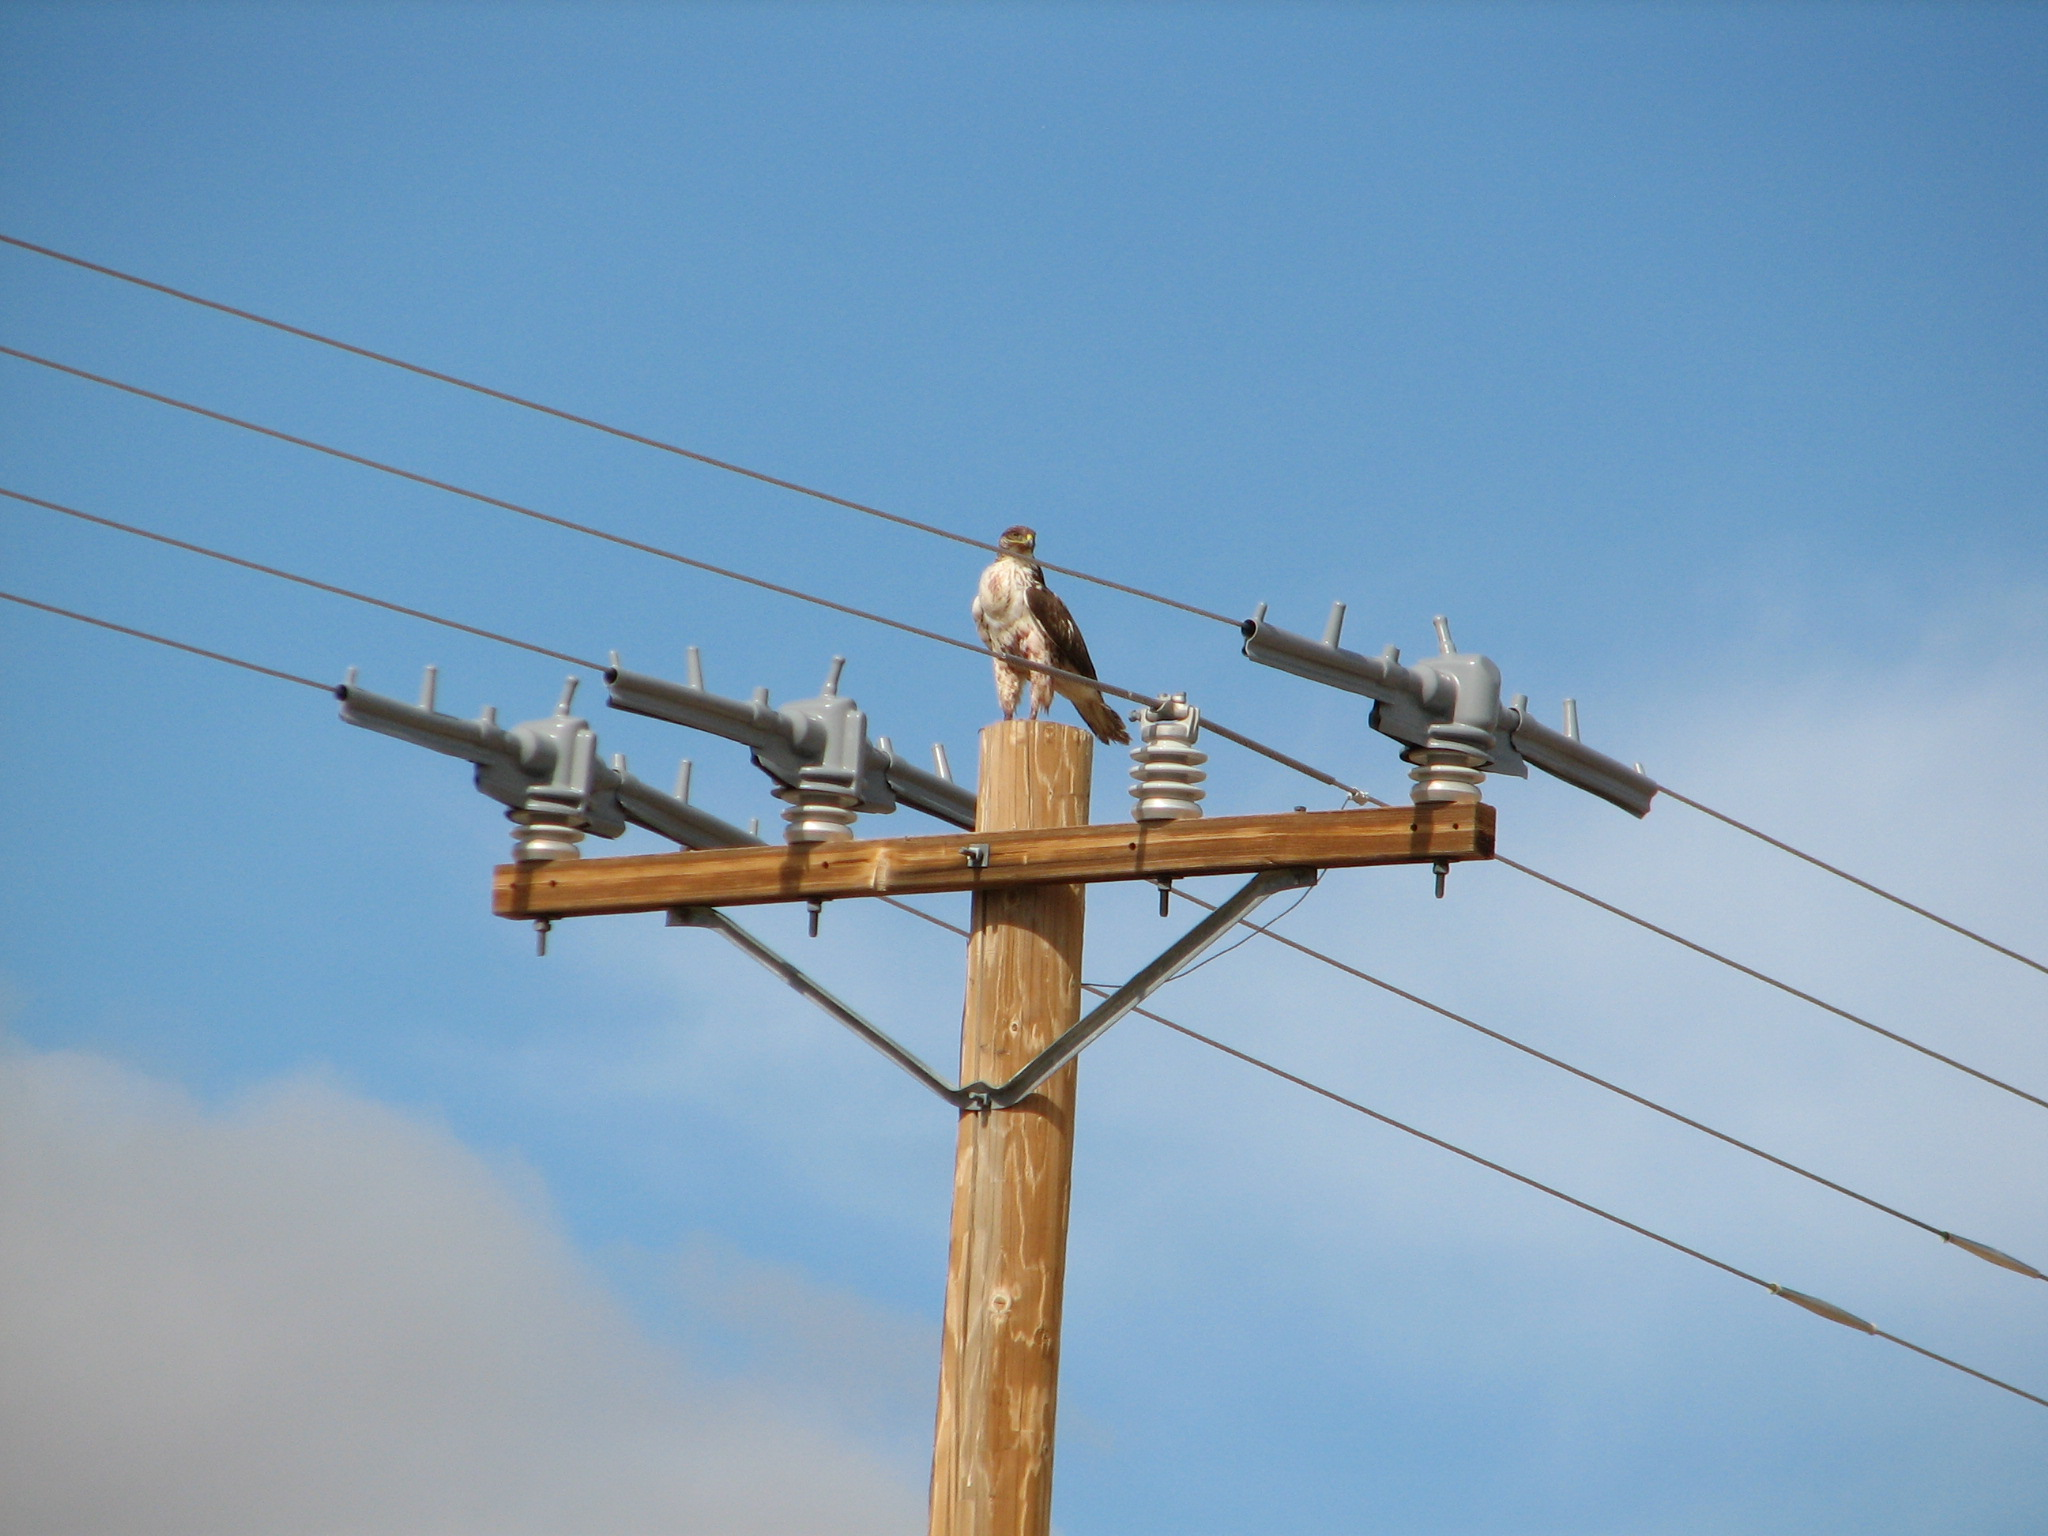 NNSS biologists and engineers are in the process of retrofitting power poles around the site to protect wildlife. The retrofit is designed to reduce the risk of electrocution to birds like this red-tailed hawk.